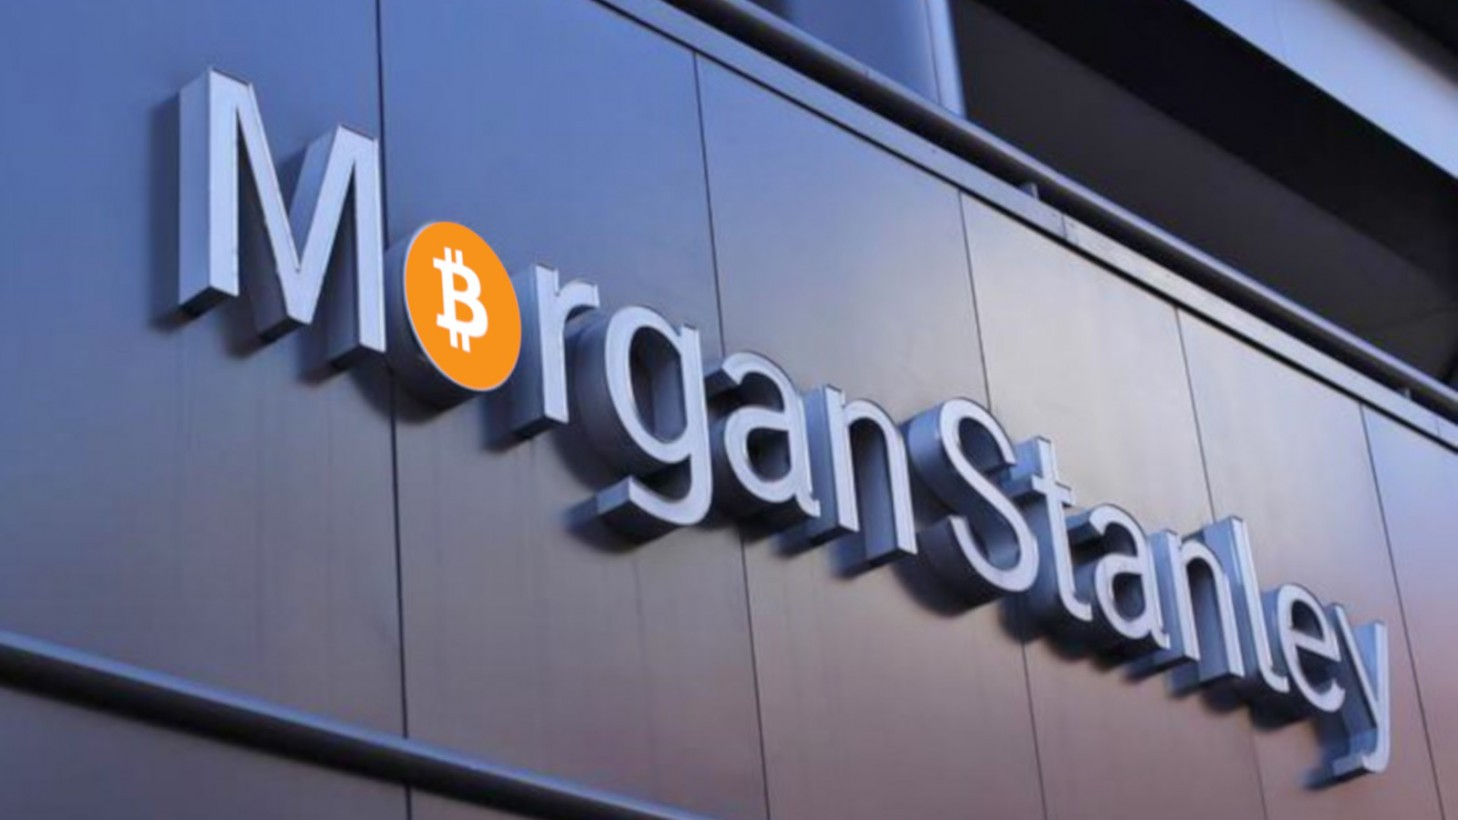 Morgan Stanley Becomes The First Big US Bank To Offer Its Wealth Management Clients Access To Bitcoin Funds - Inventiva